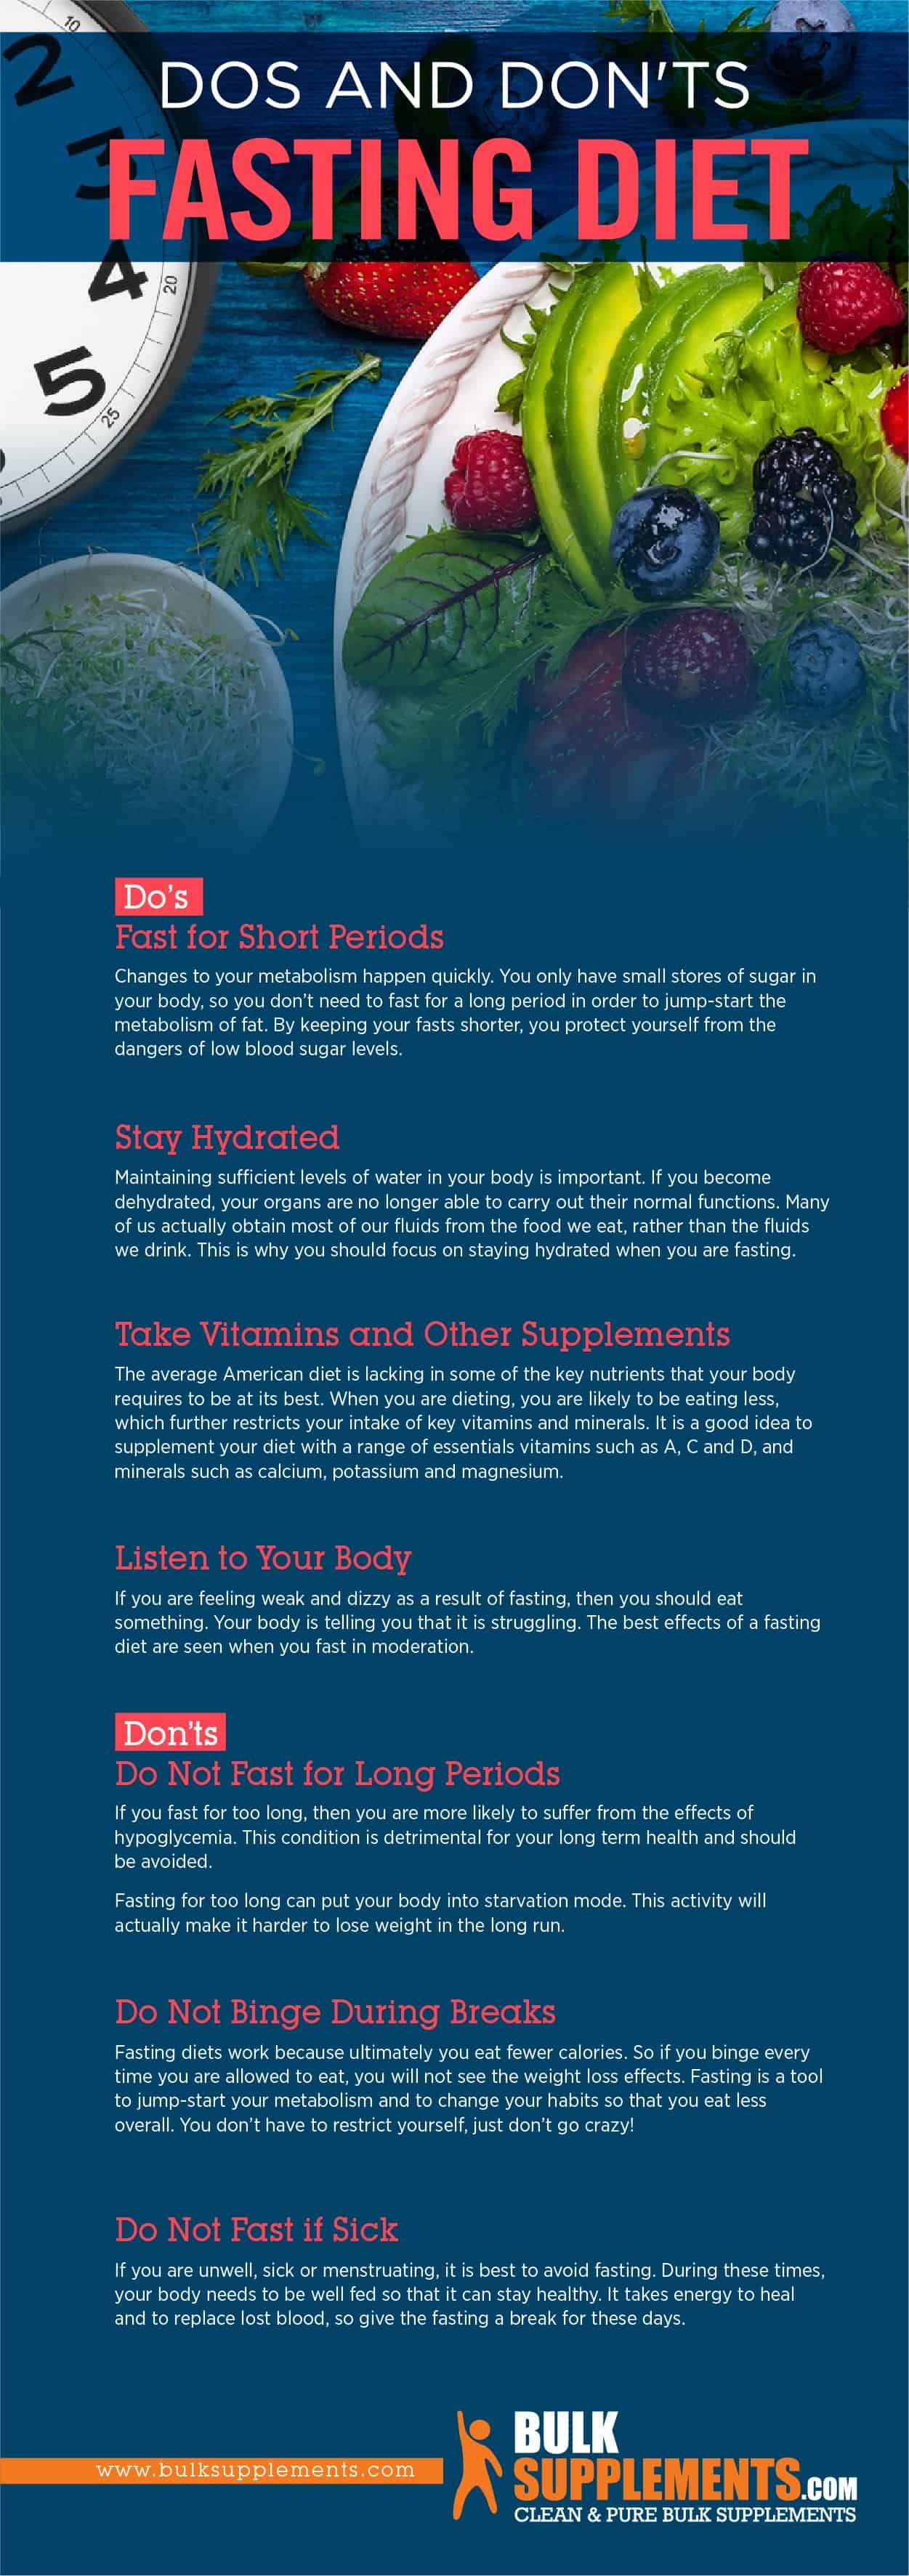 Fasting Diet Dos and Don'ts